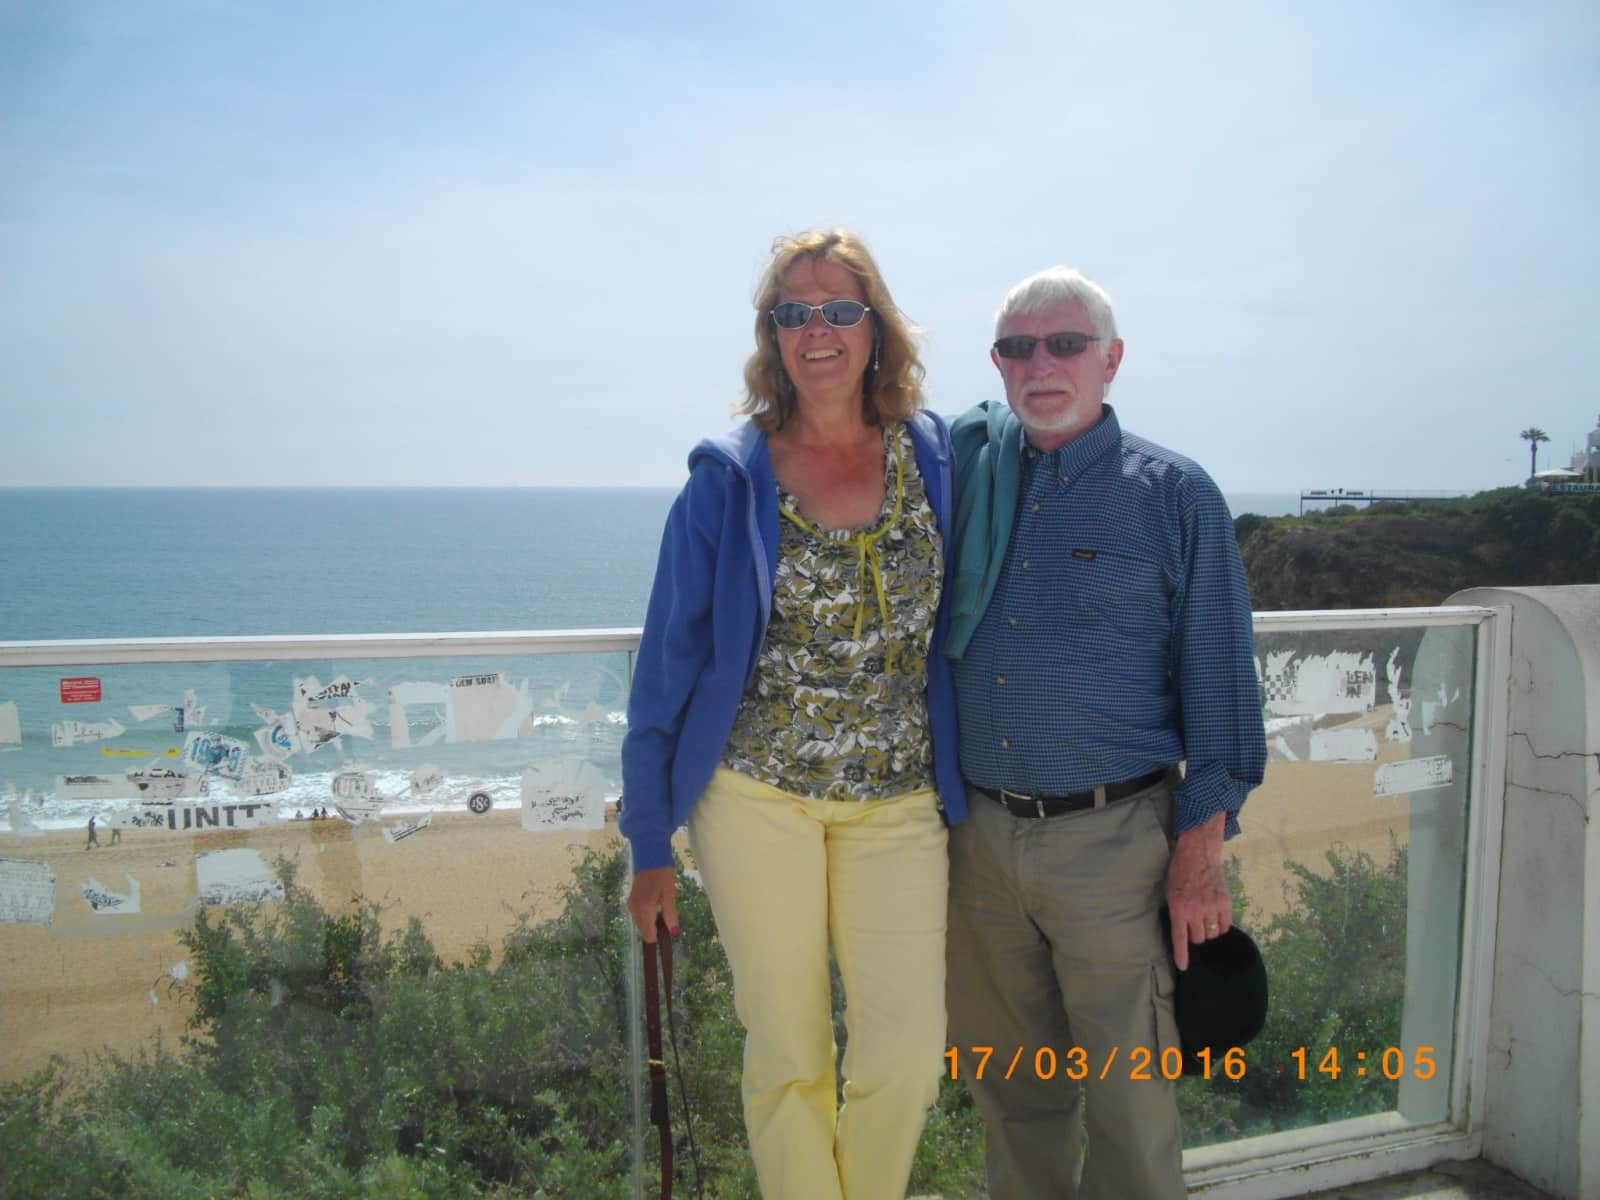 Mary & David from Markfield, United Kingdom